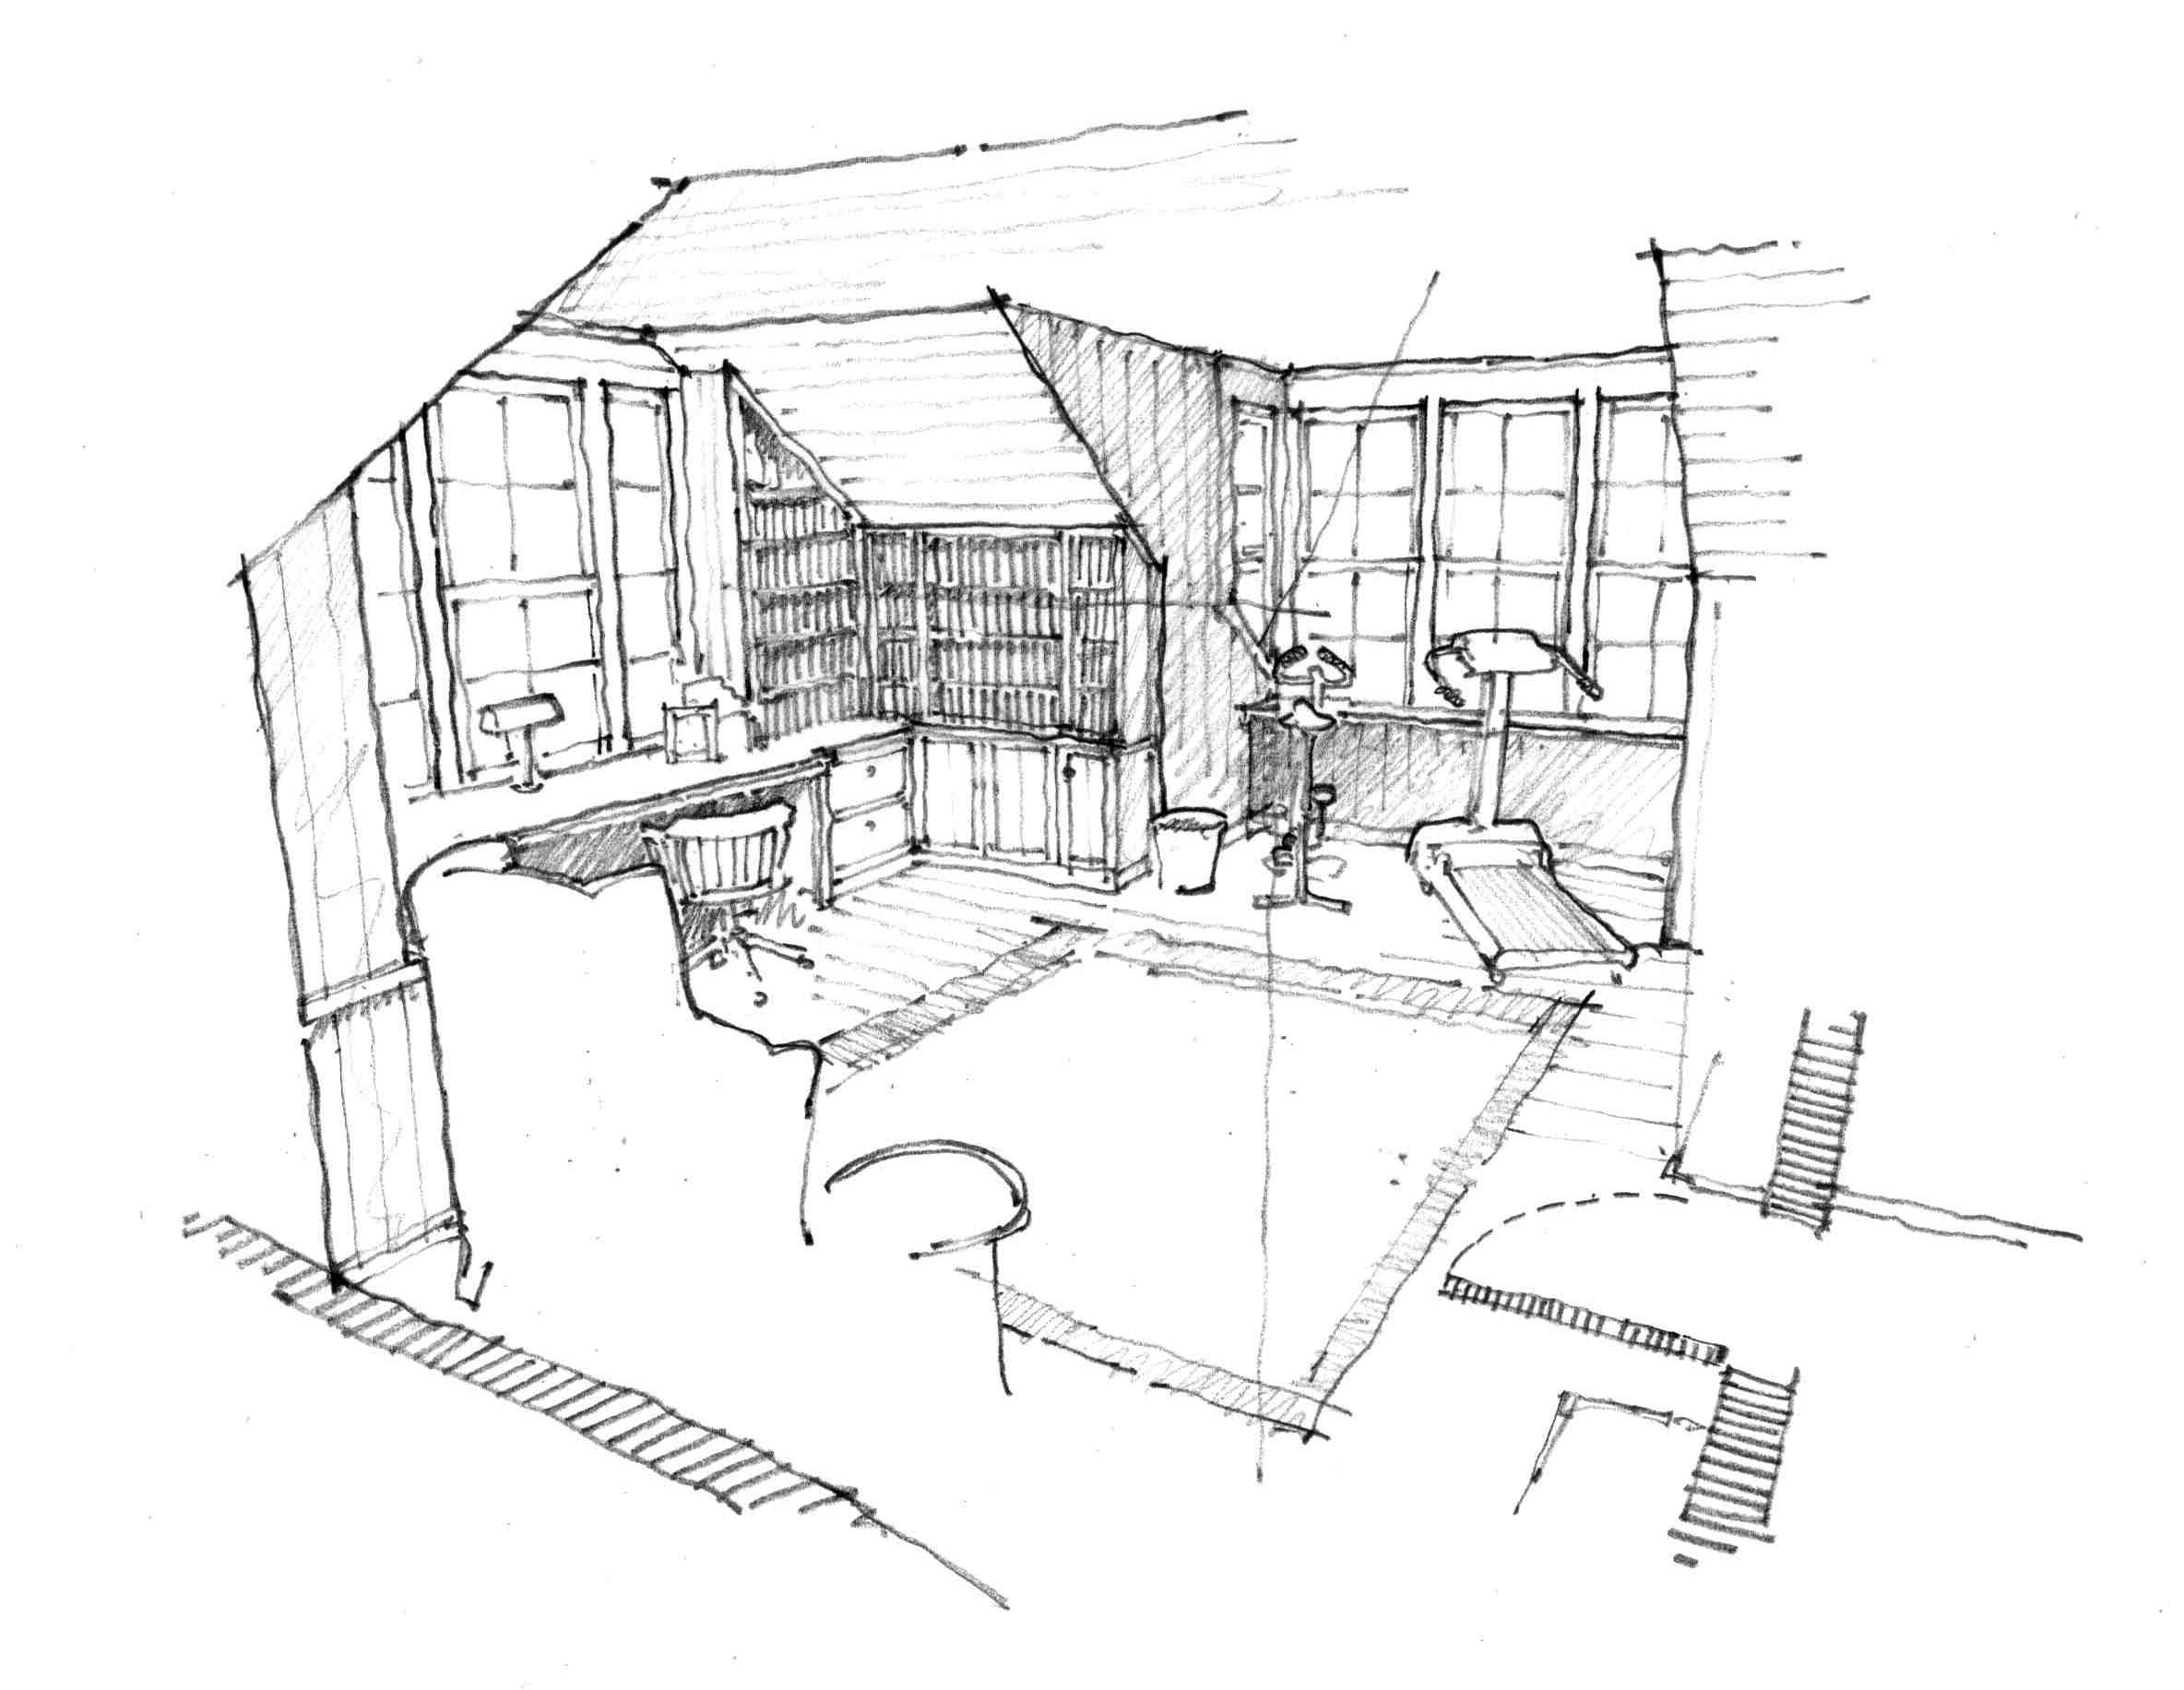 Hc interior perspective pencil interior perspective sketches produced for client to assist in visualization of space drawn over rough sketchup model